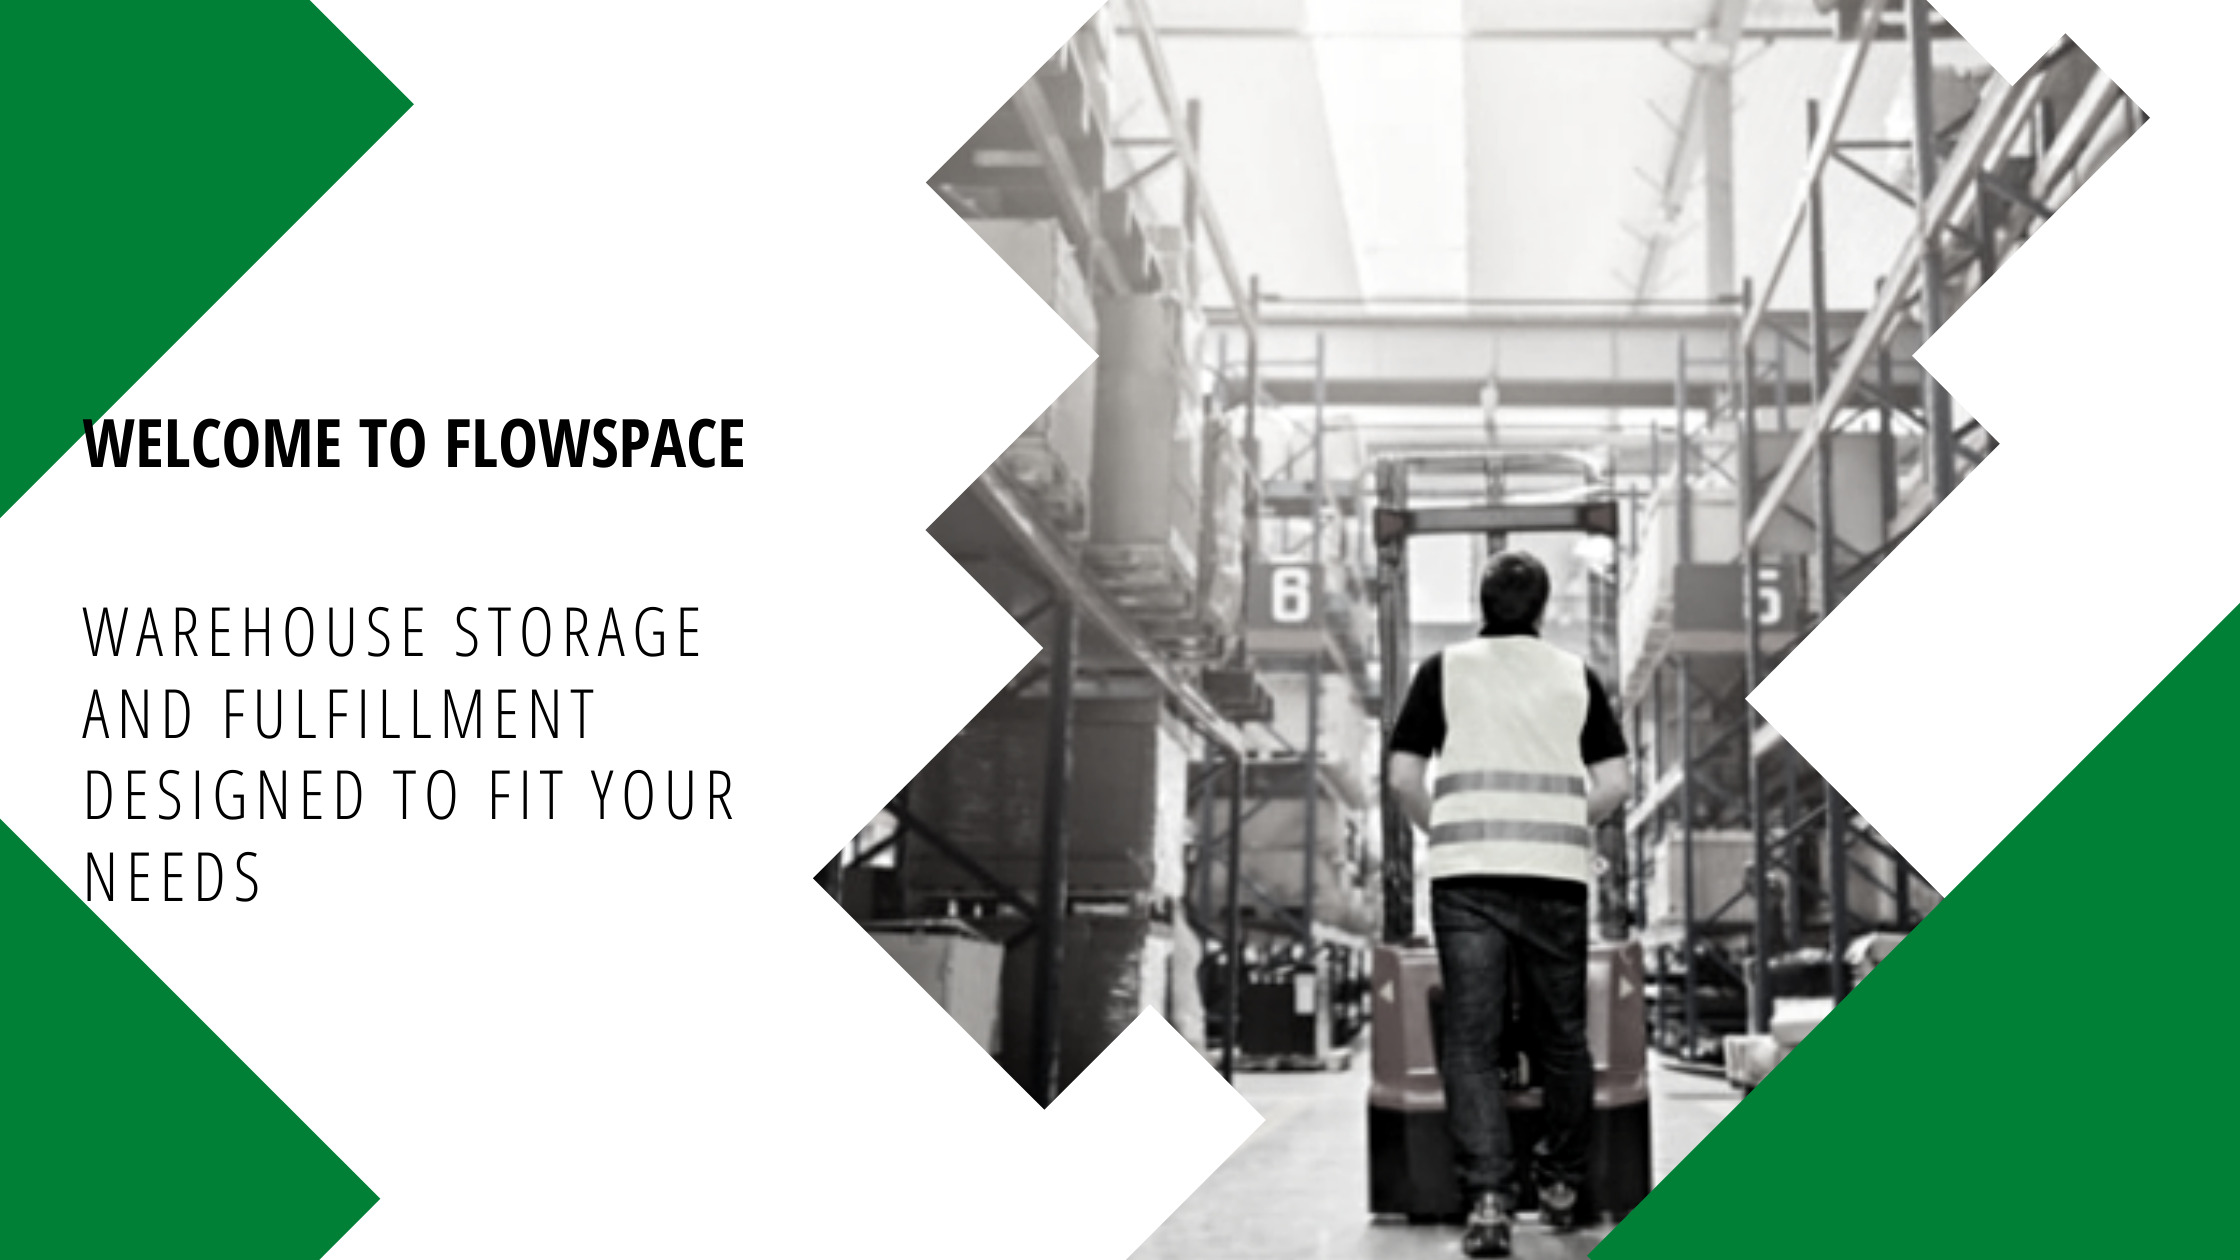 Warehouse Storage and Fulfillment Designed To Fit Your Needs Cover Page